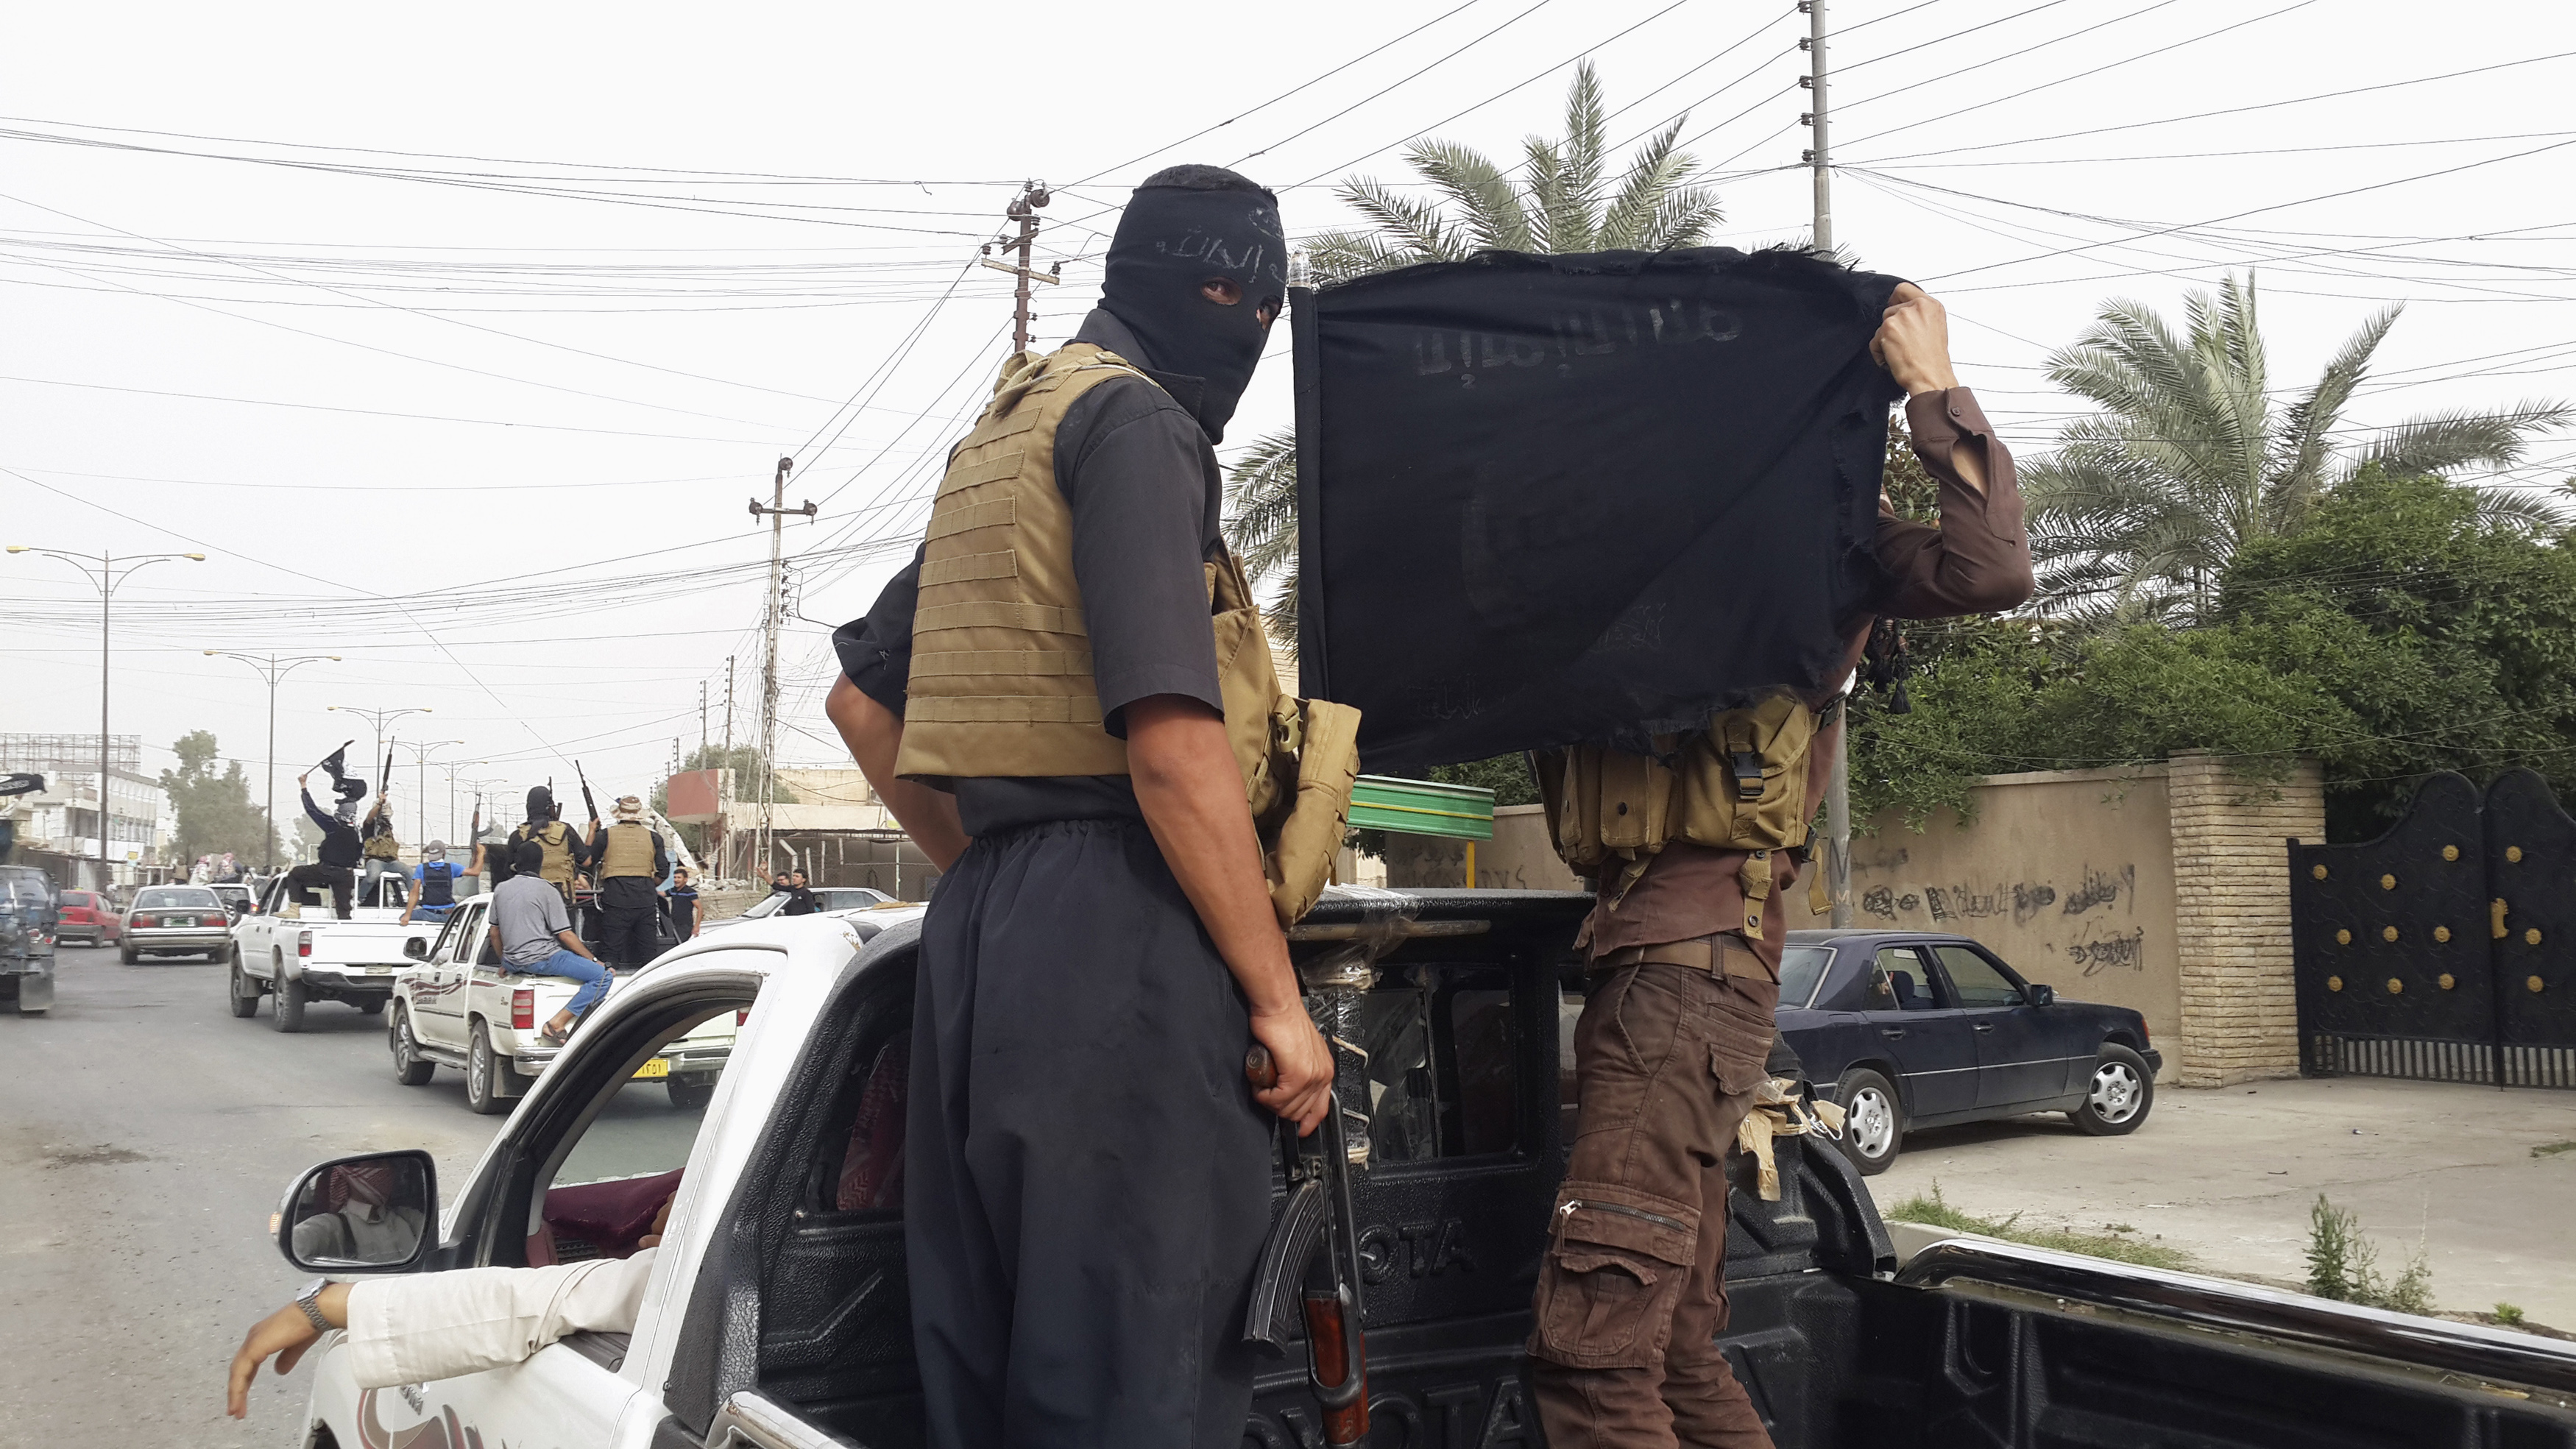 Fighters of the Islamic State of Iraq and the Levant (ISIL) celebrate on vehicles taken from Iraqi security forces, at a street in city of Mosul, June 12, 2014.